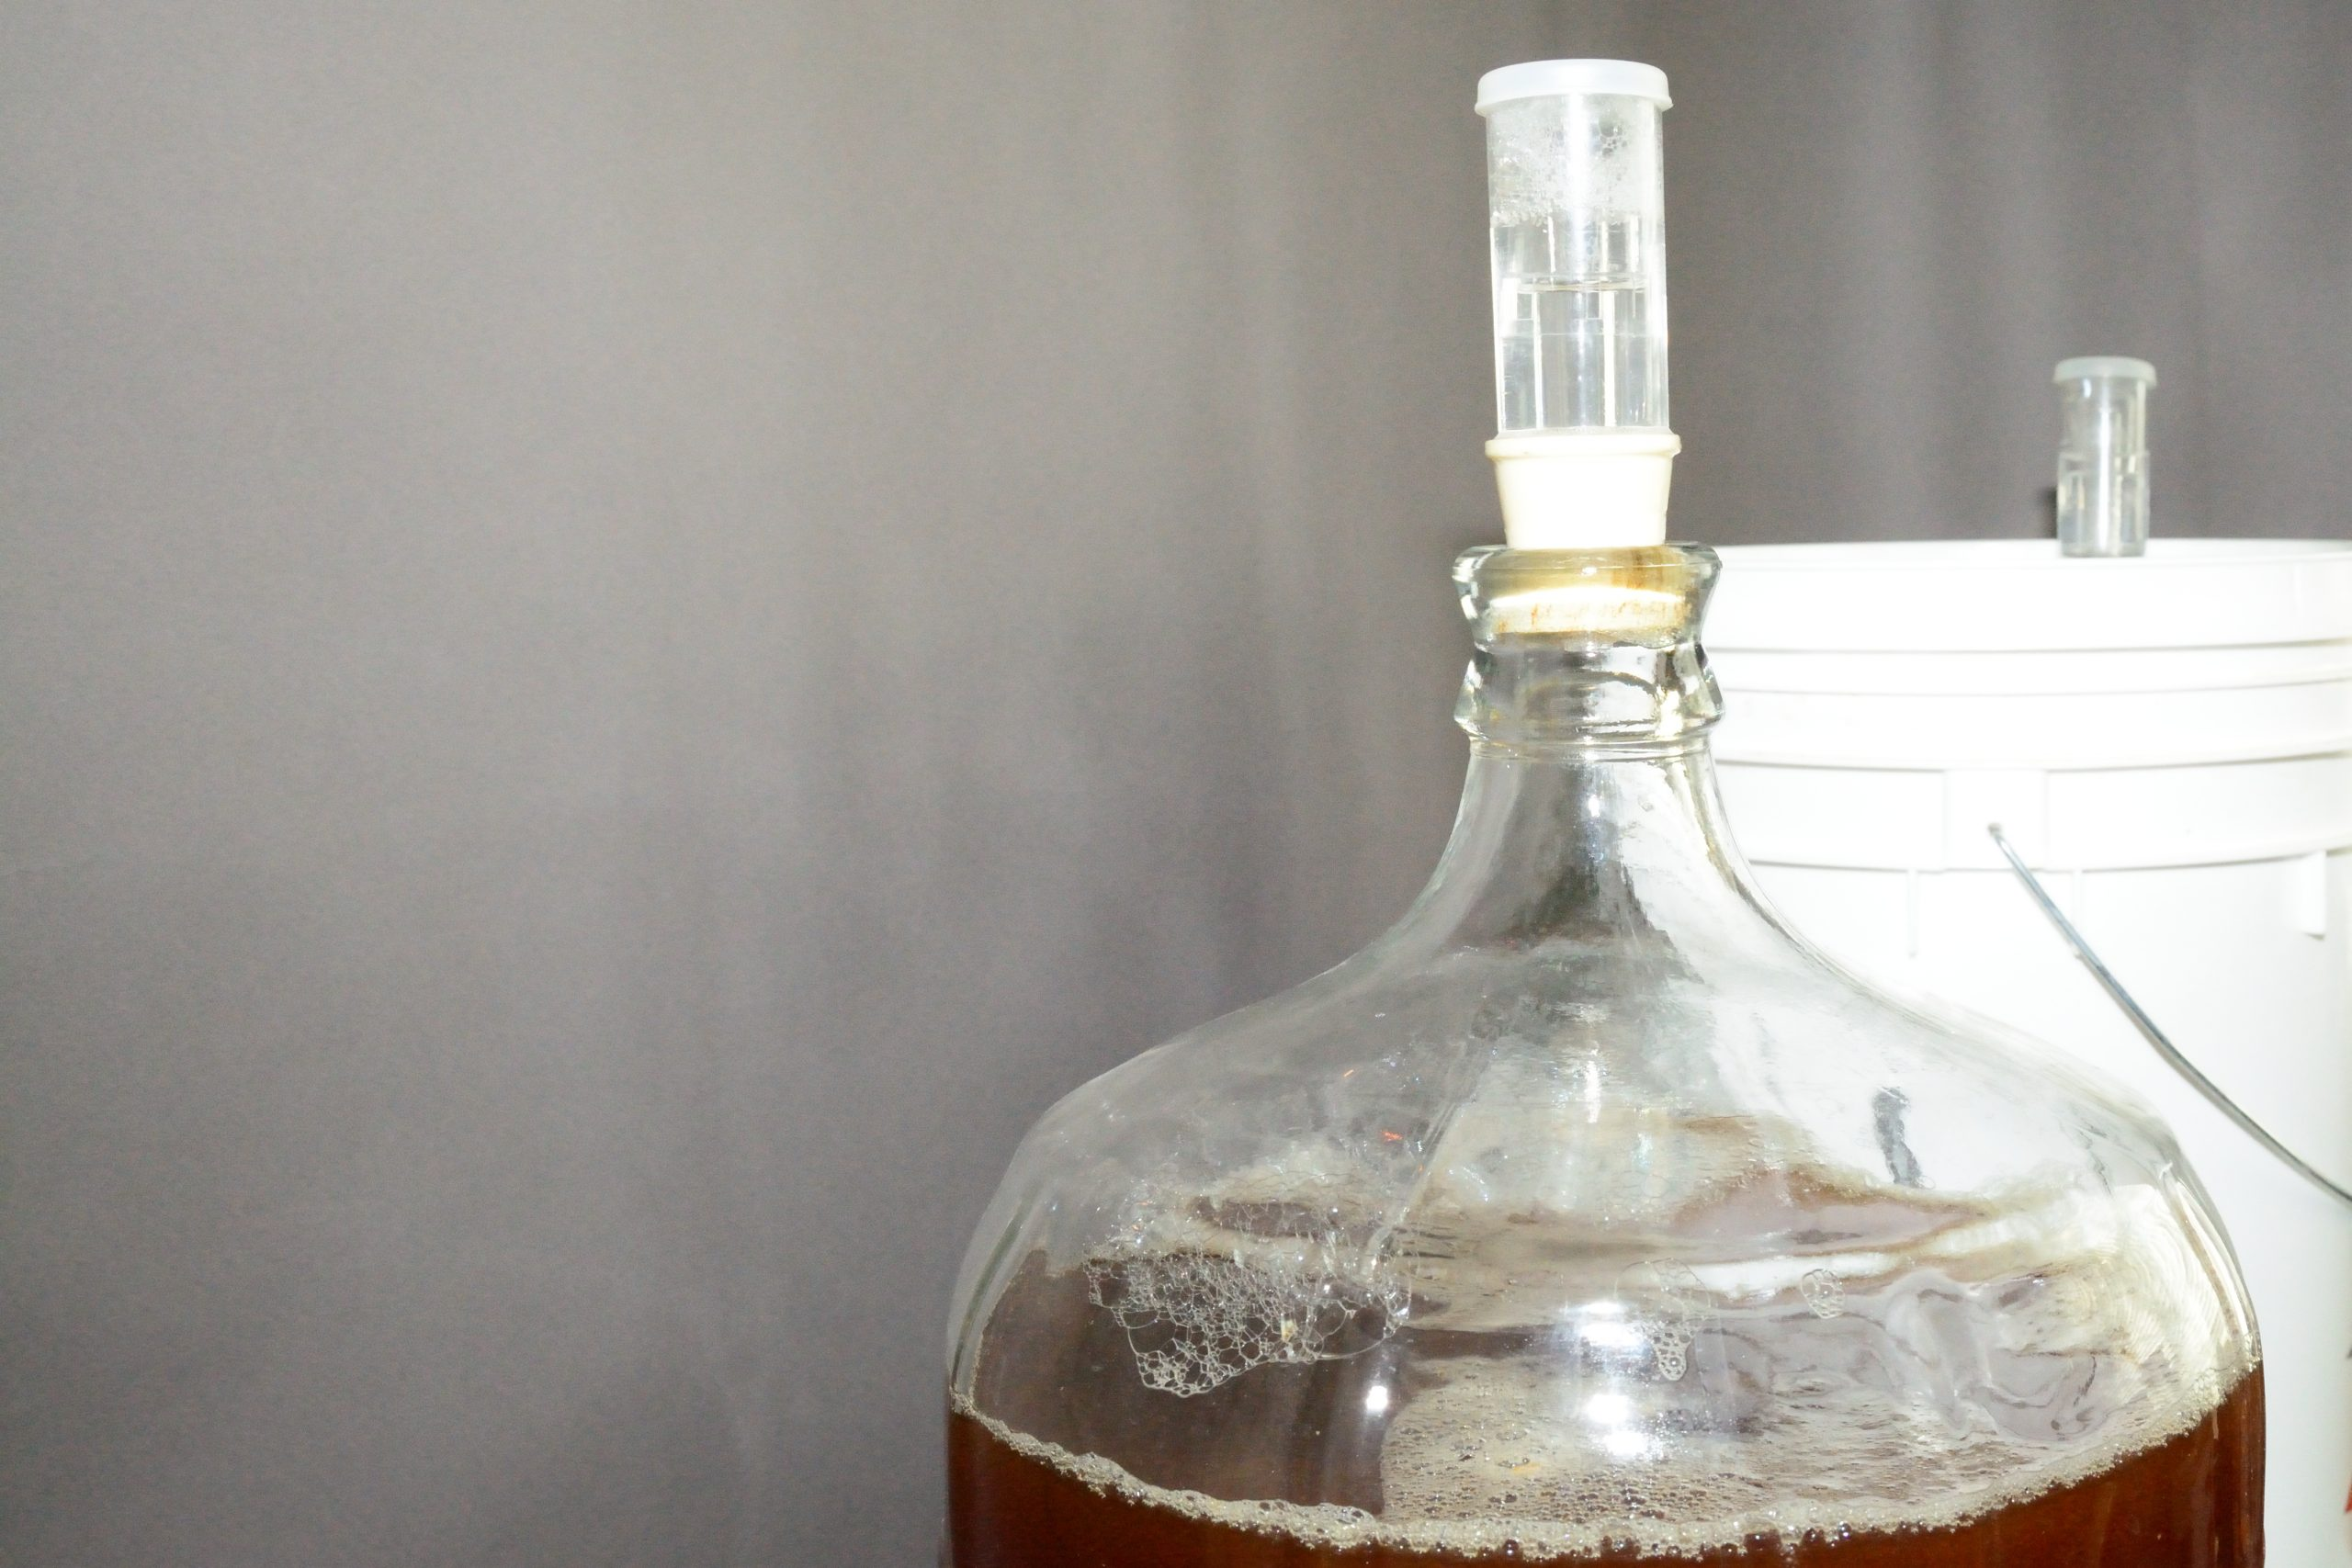 5 gallon glass carboy filled with beer